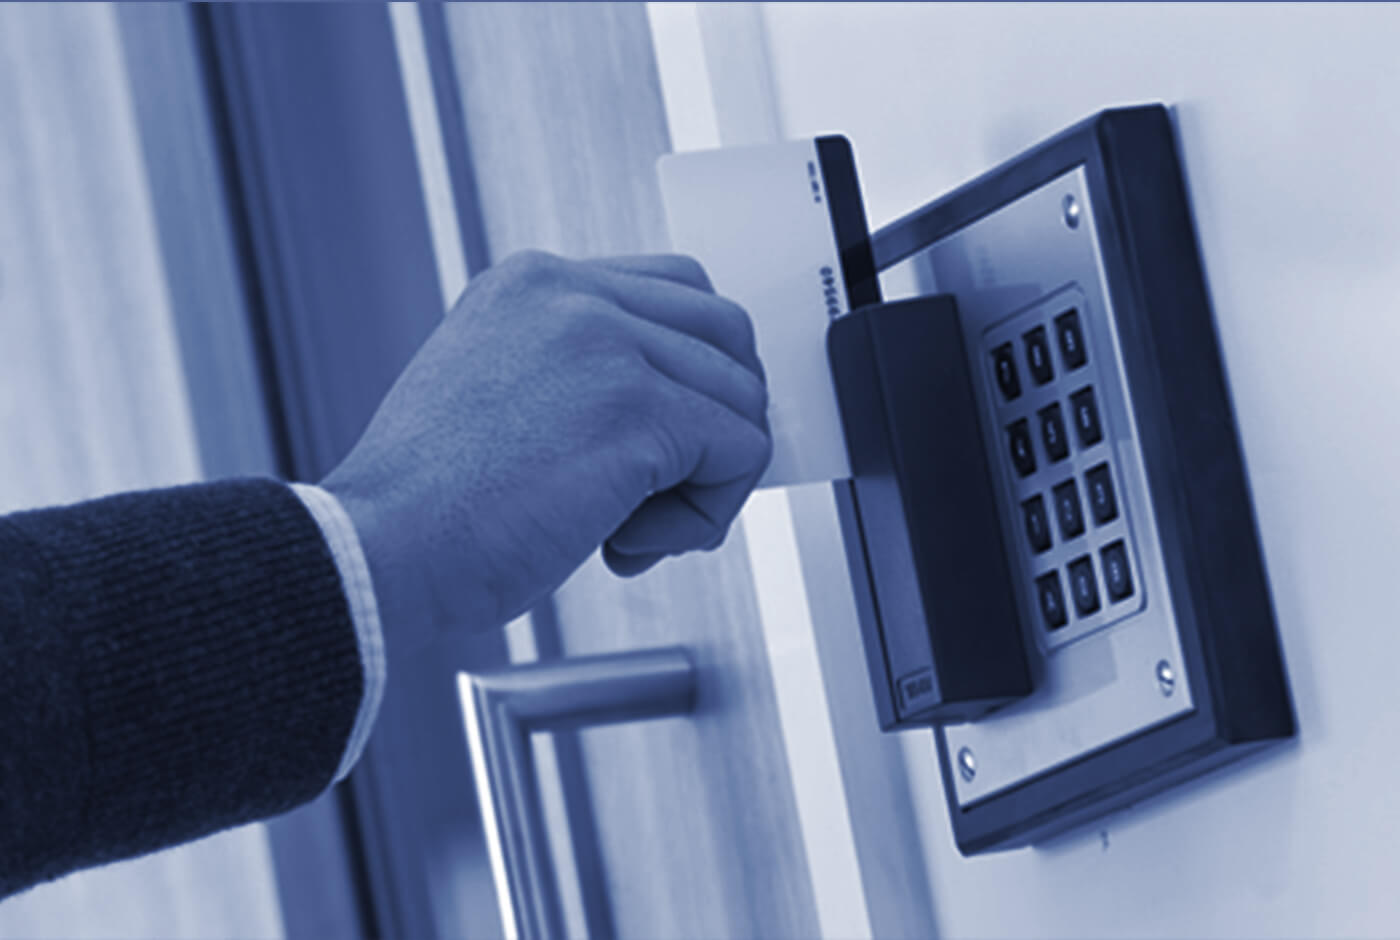 Hawk Eye Access Control Systems